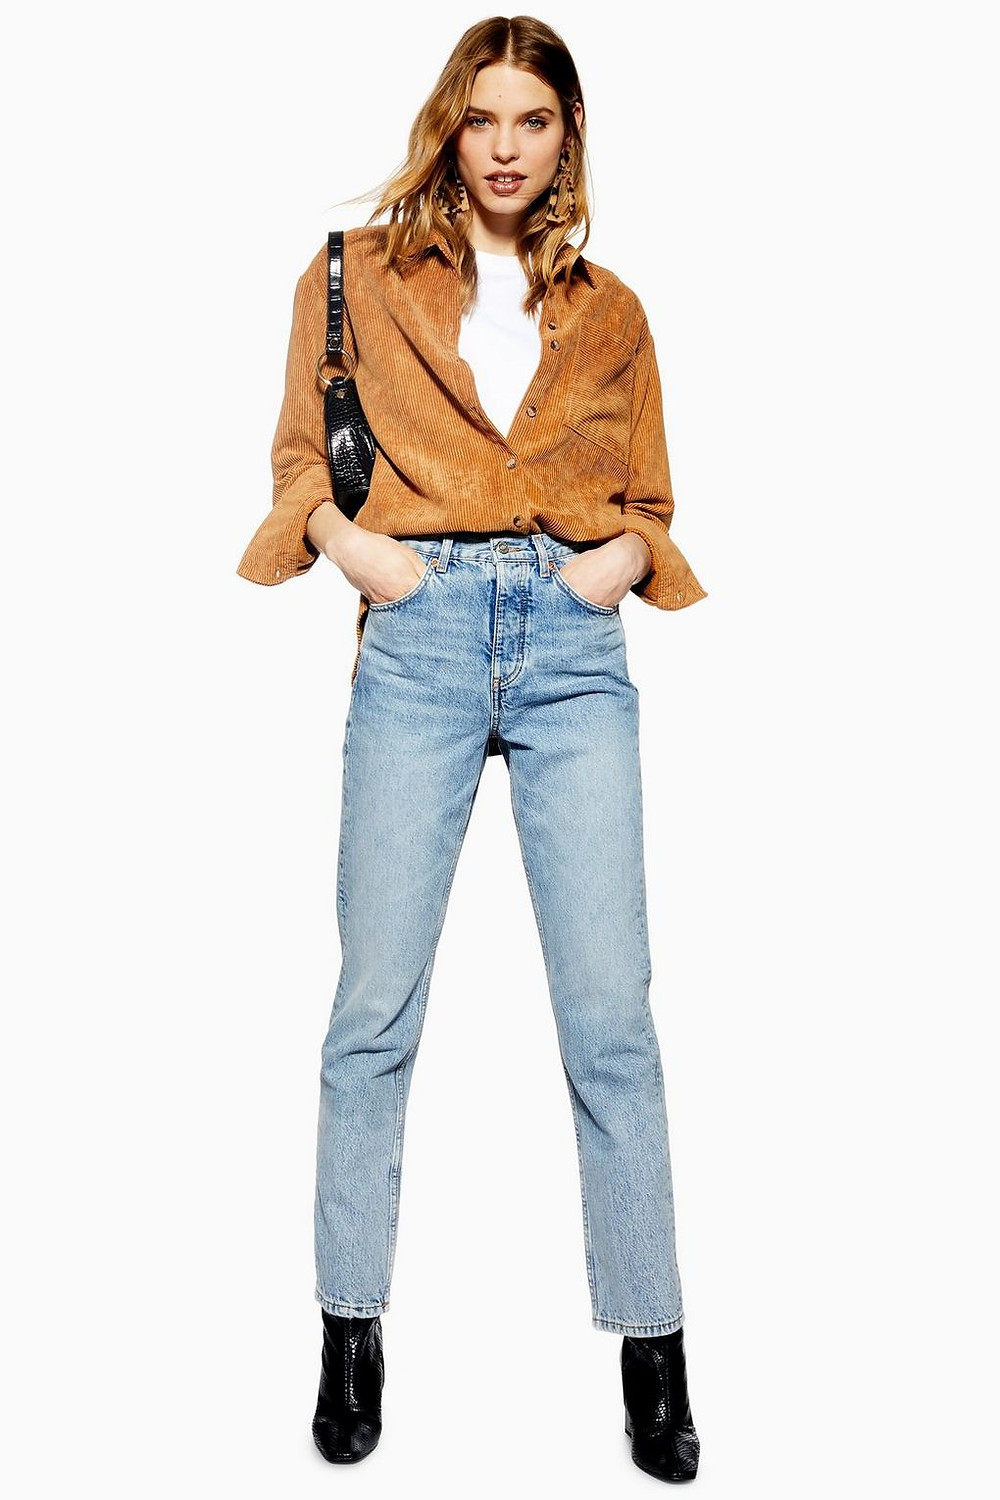 Topshop Bleach Editor Cropped Jeans (49£/68€)